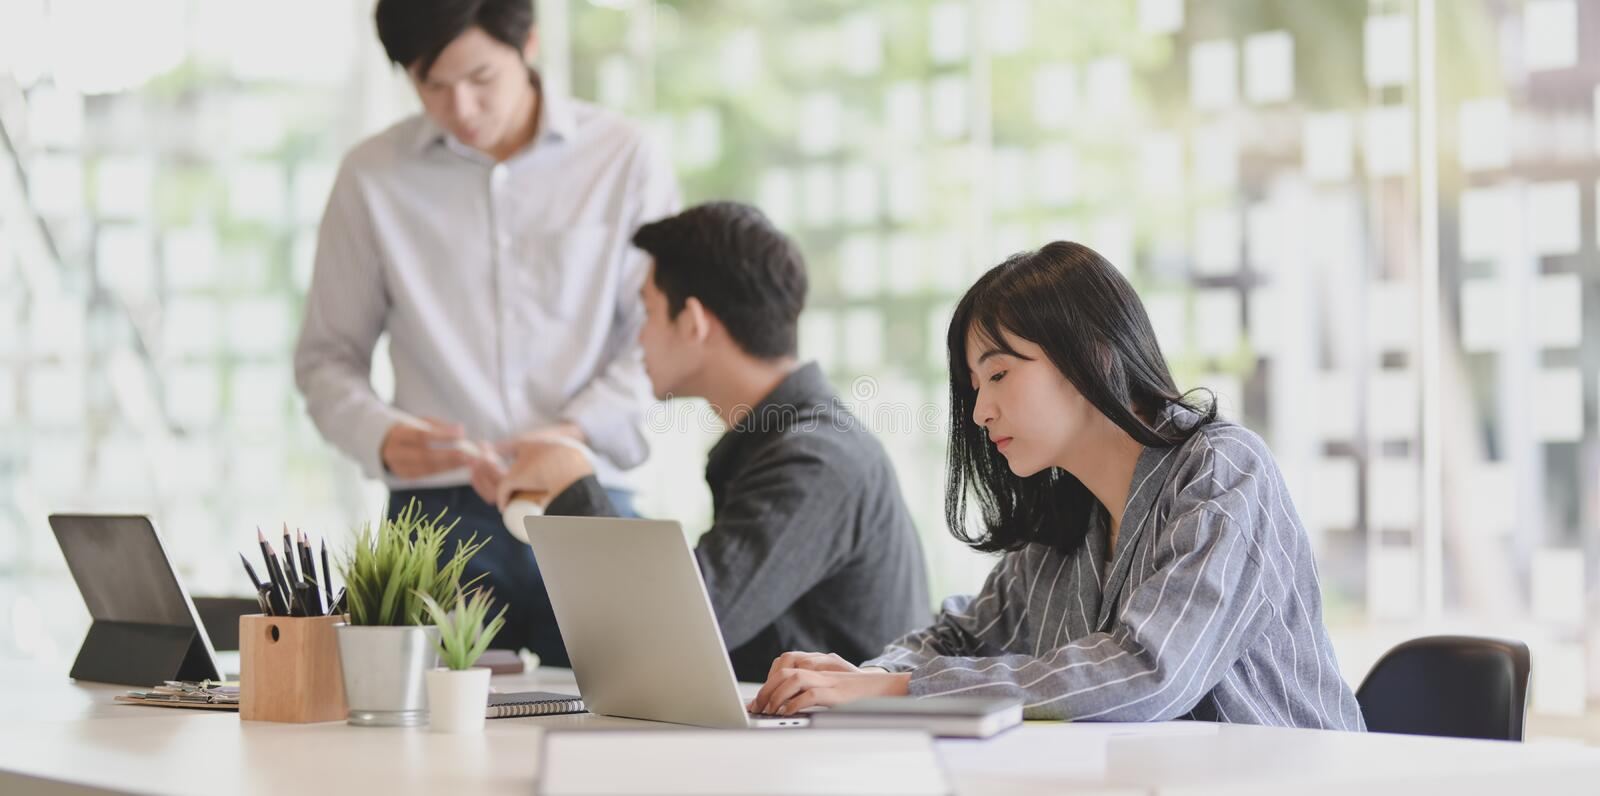 Young businesswoman working on her project with her team members discussing in the background stock photos